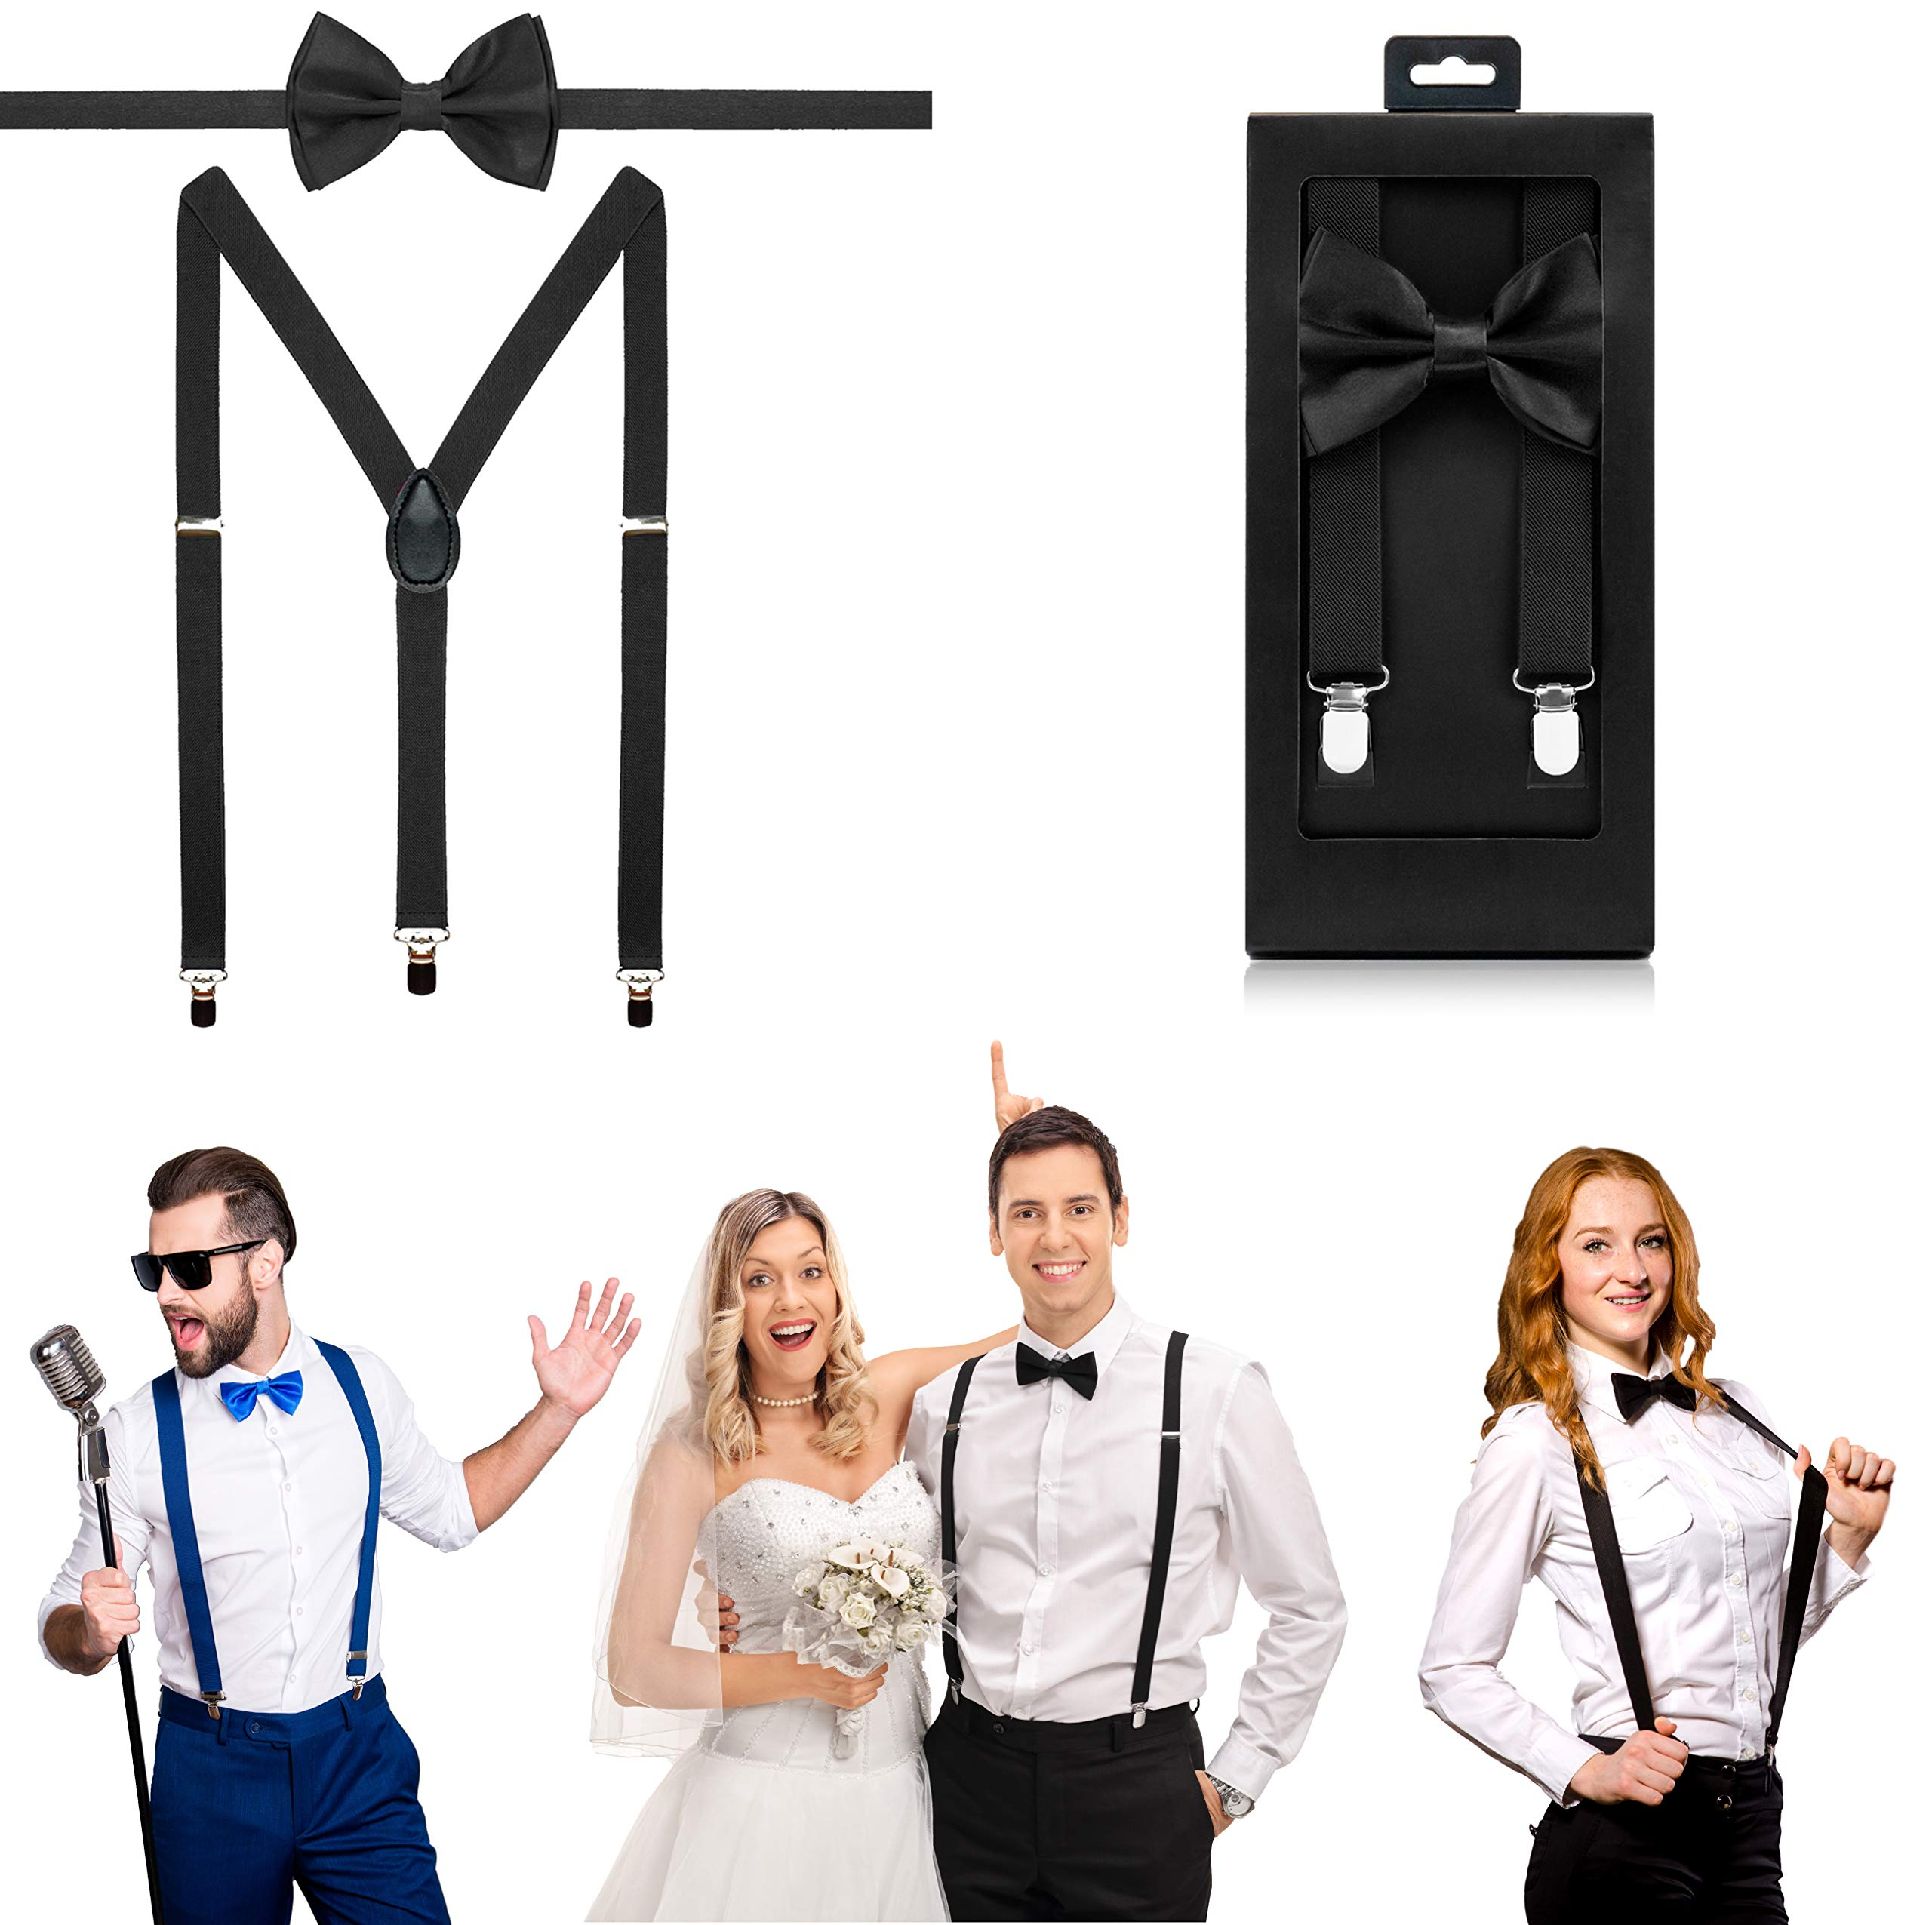 McWay Bowtie and Suspender Set For Men, Adults   Premium Quality   With Gift Box   Wide And Adjustable   Classy Design (Black)